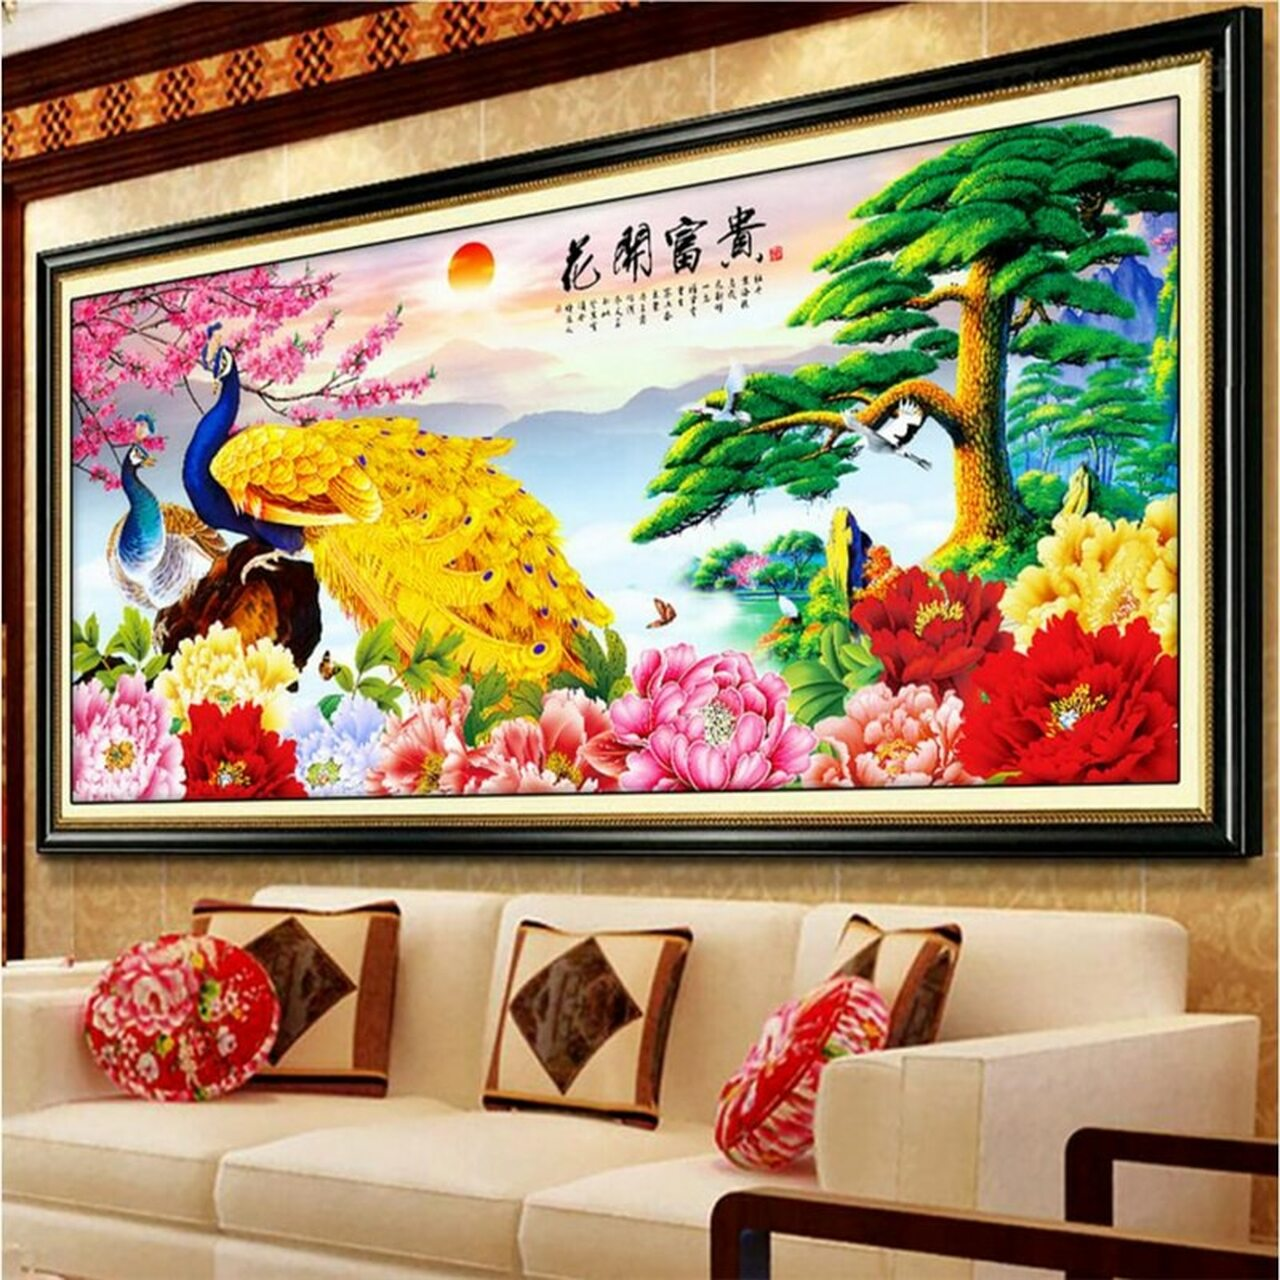 Beibehang Chinese Peacock Photo Wallpaper 3d Mural Wallpaper For Living Room Bedroom Sofa Backdrop Murals Wall Papers Home Decor Onshopdeals Com